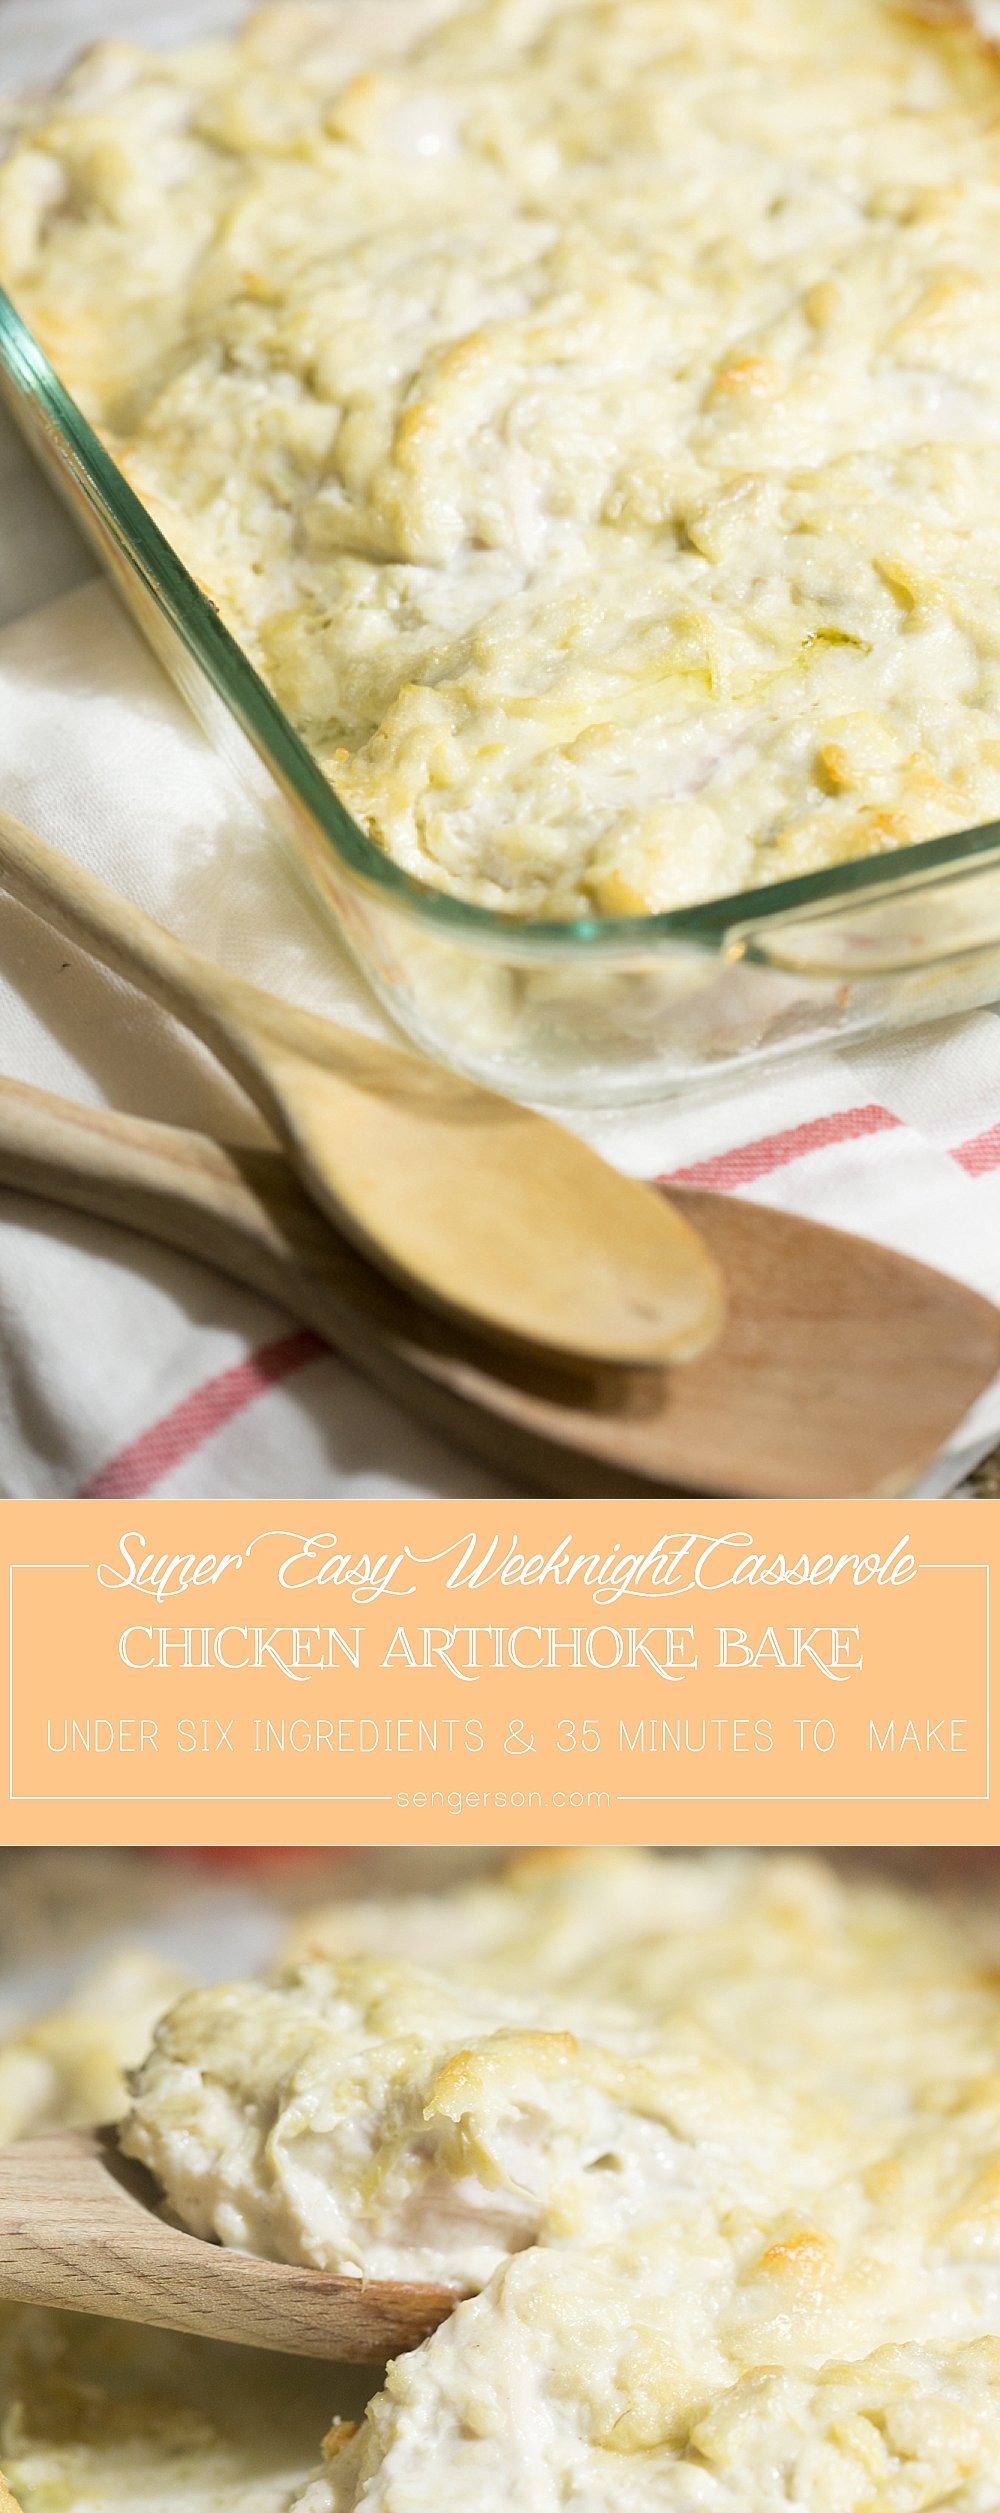 Delicious and easy chicken artichoke bake on a weeknight everyone is sure to love. #ExperienceScrubDots #ad